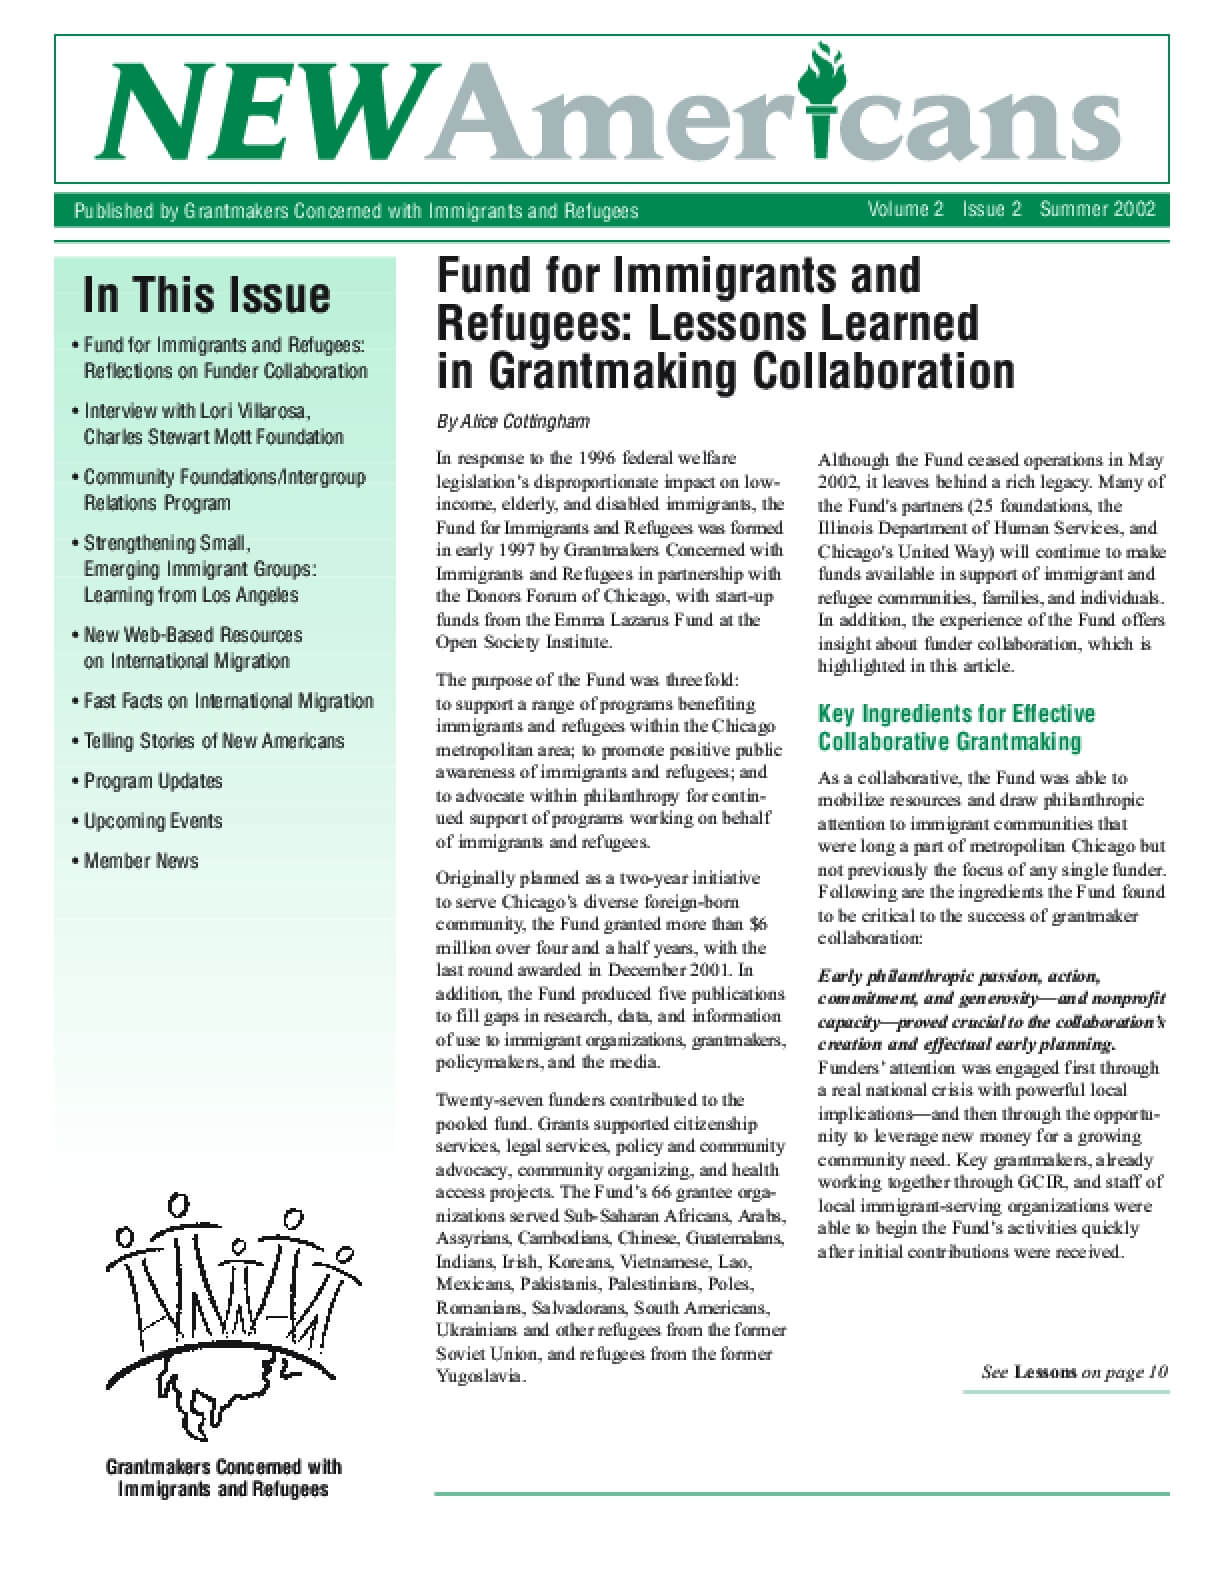 Fund for Immigrants and Refugees: Lessons Learned in Grantmaking Collaboration